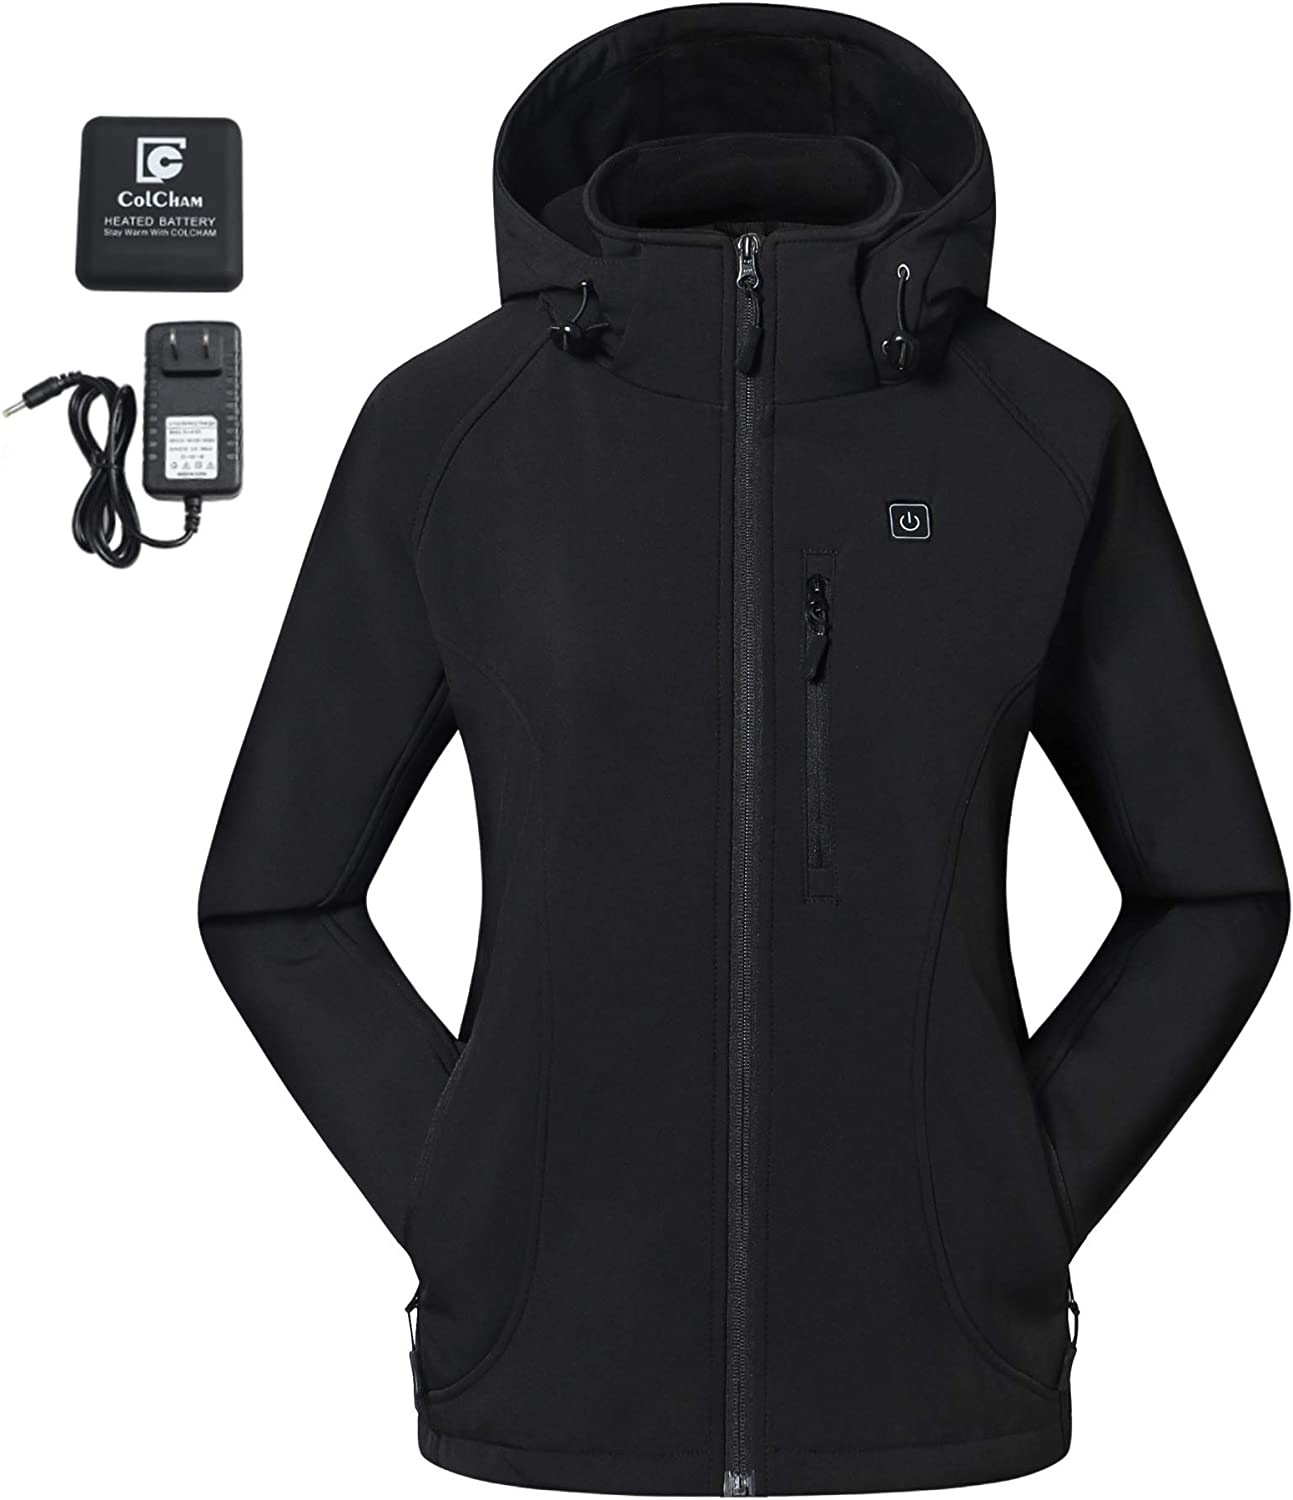 COLCHAM Heated Jacket Department store for Kansas City Mall Women and with Battery Hood Detachable